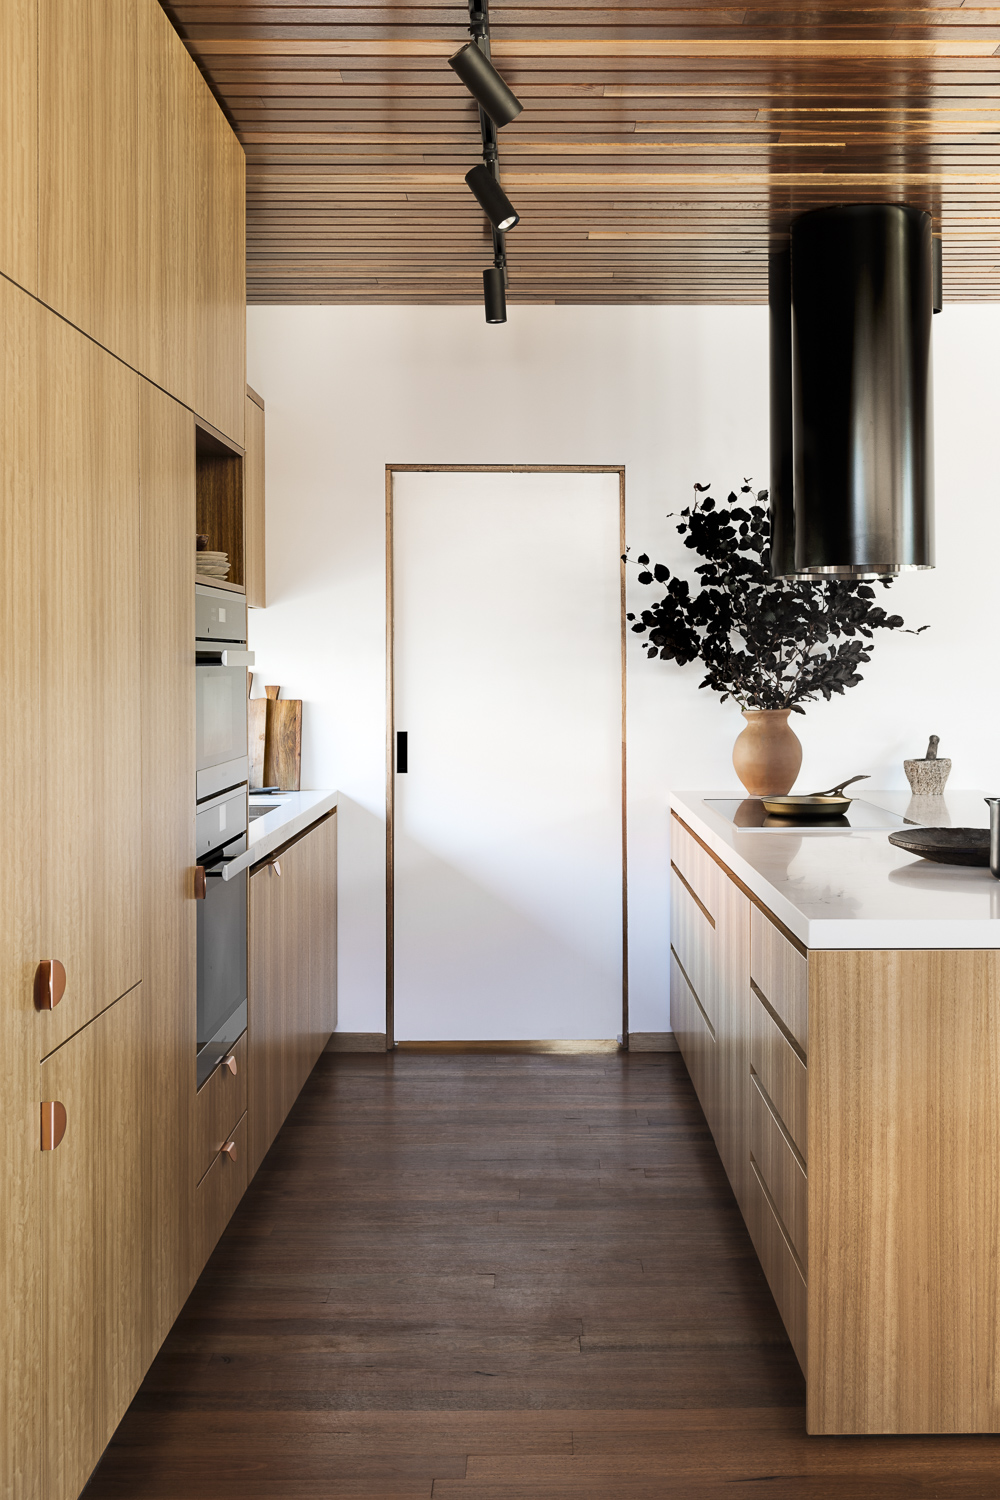 Cantilever K2 Kitchen System at Stewart Street for Stavrias Architecture (13).jpg